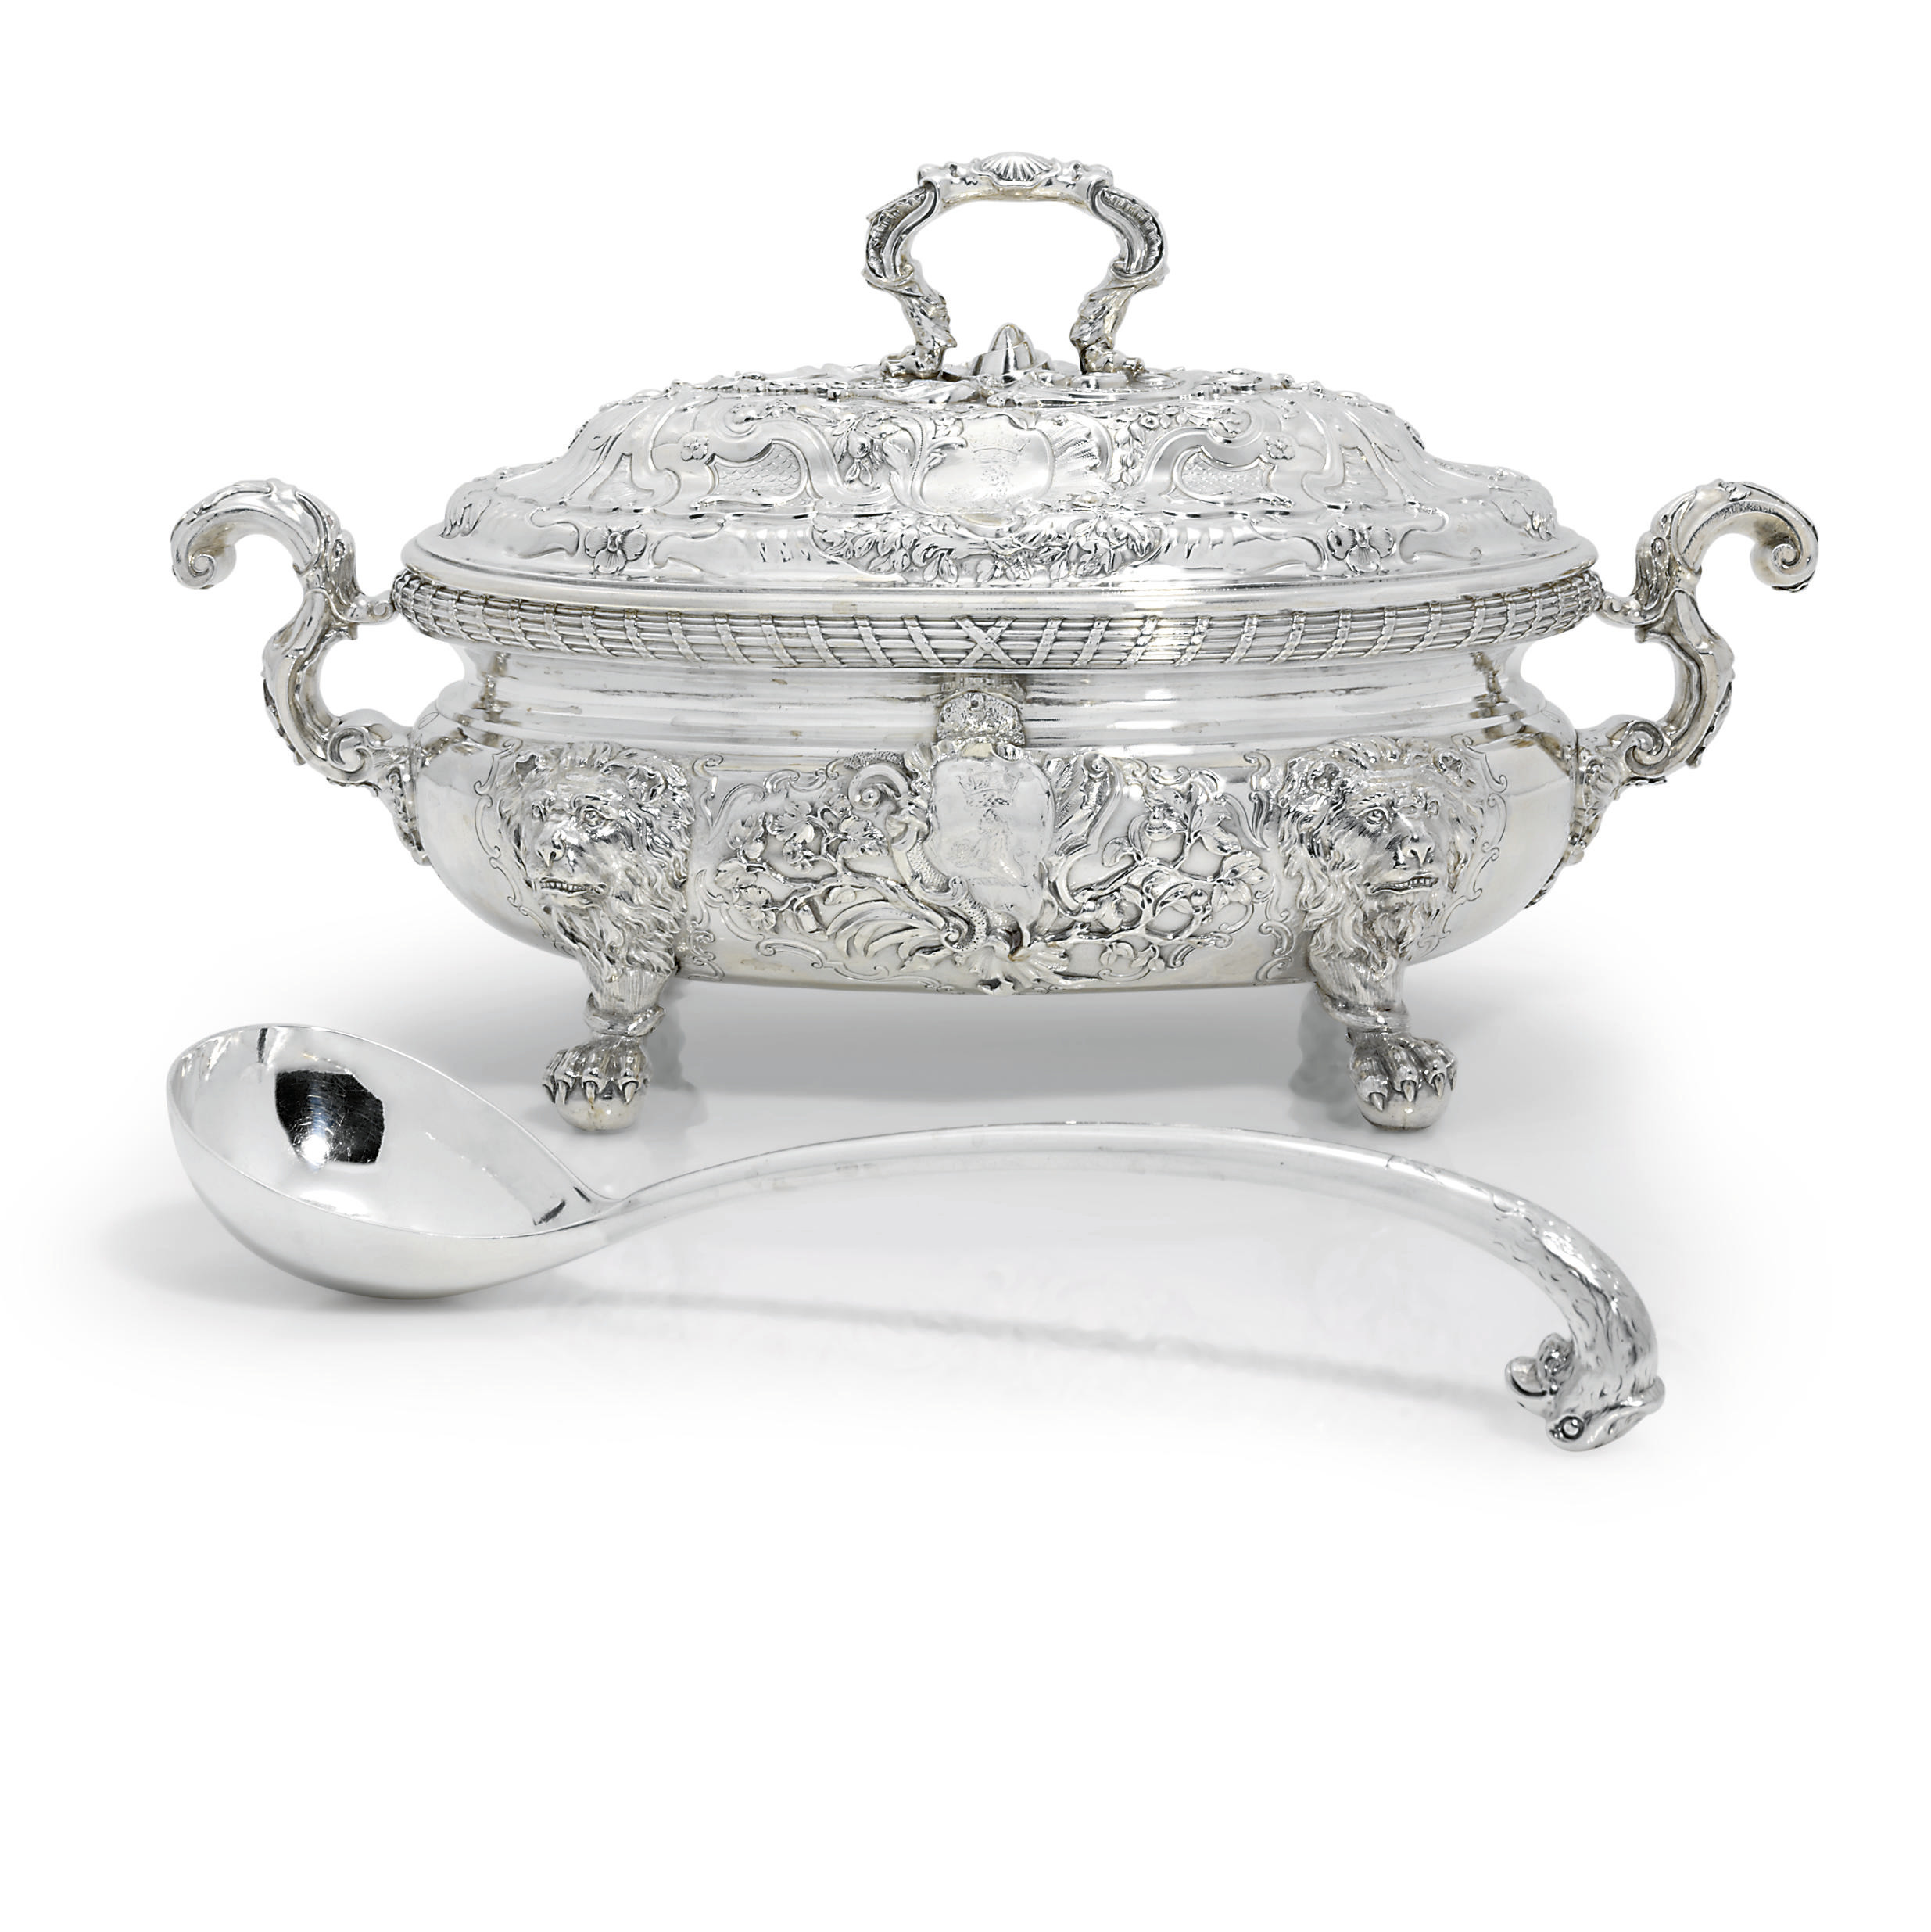 A GEORGE II SILVER SOUP-TUREEN AND COVER WITH AN ASSOCIATED LADLE